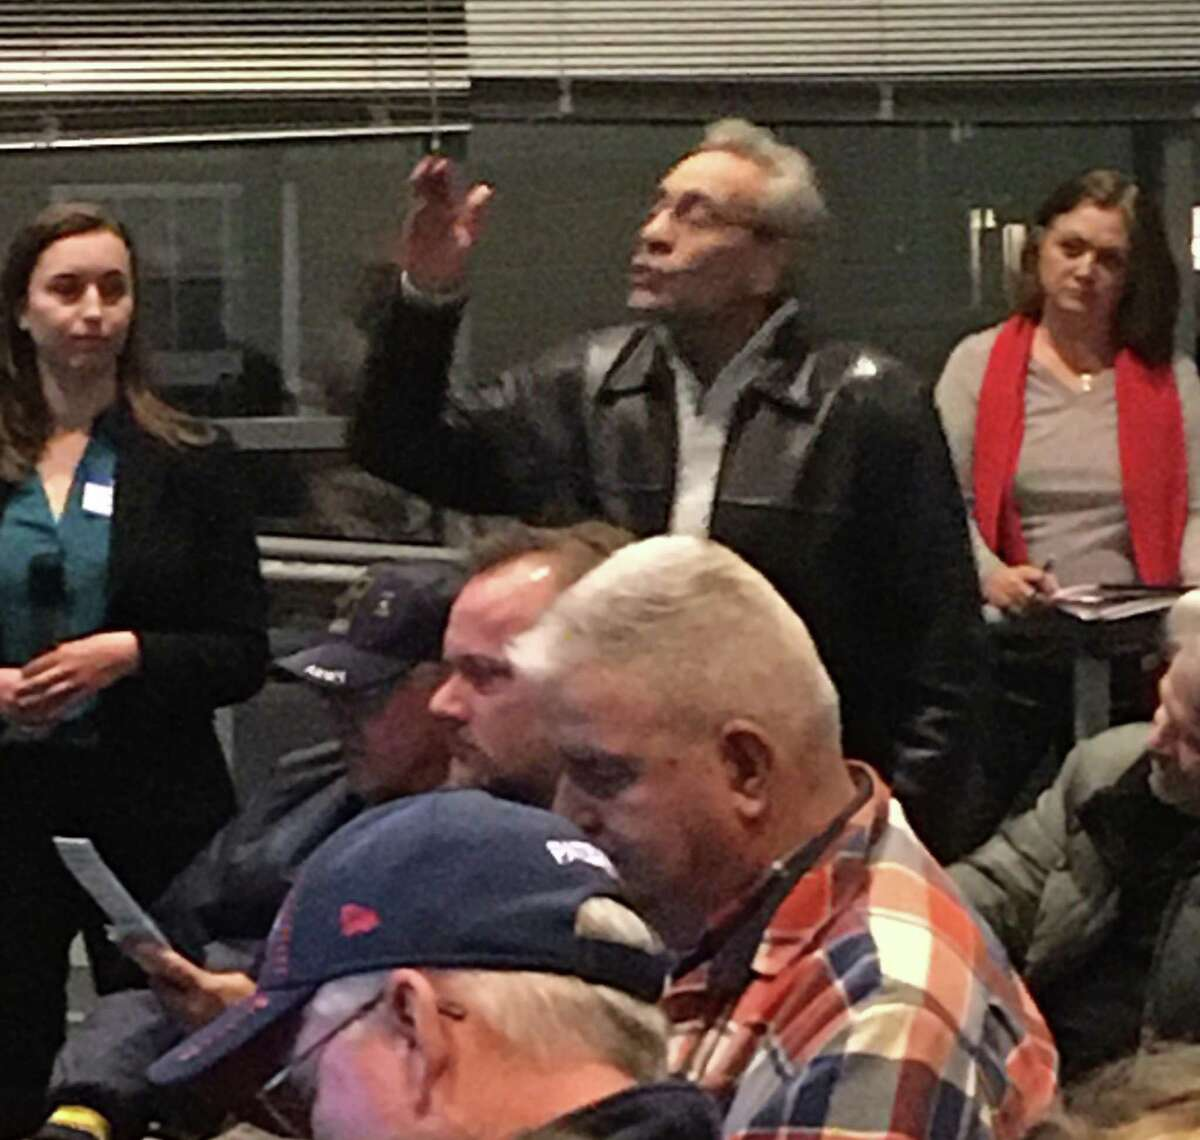 Elmer Street resident Ken Bellelo of New Haven speaks on Wednesday, Dec. 11, 2019 at the first of two public meetings on Tweed New Haven Regional Airport's upcoming master plan update. A second meeting will take place on Thursday, Dec. 12 at 6:30 p.m. at the East Haven Senior Center.